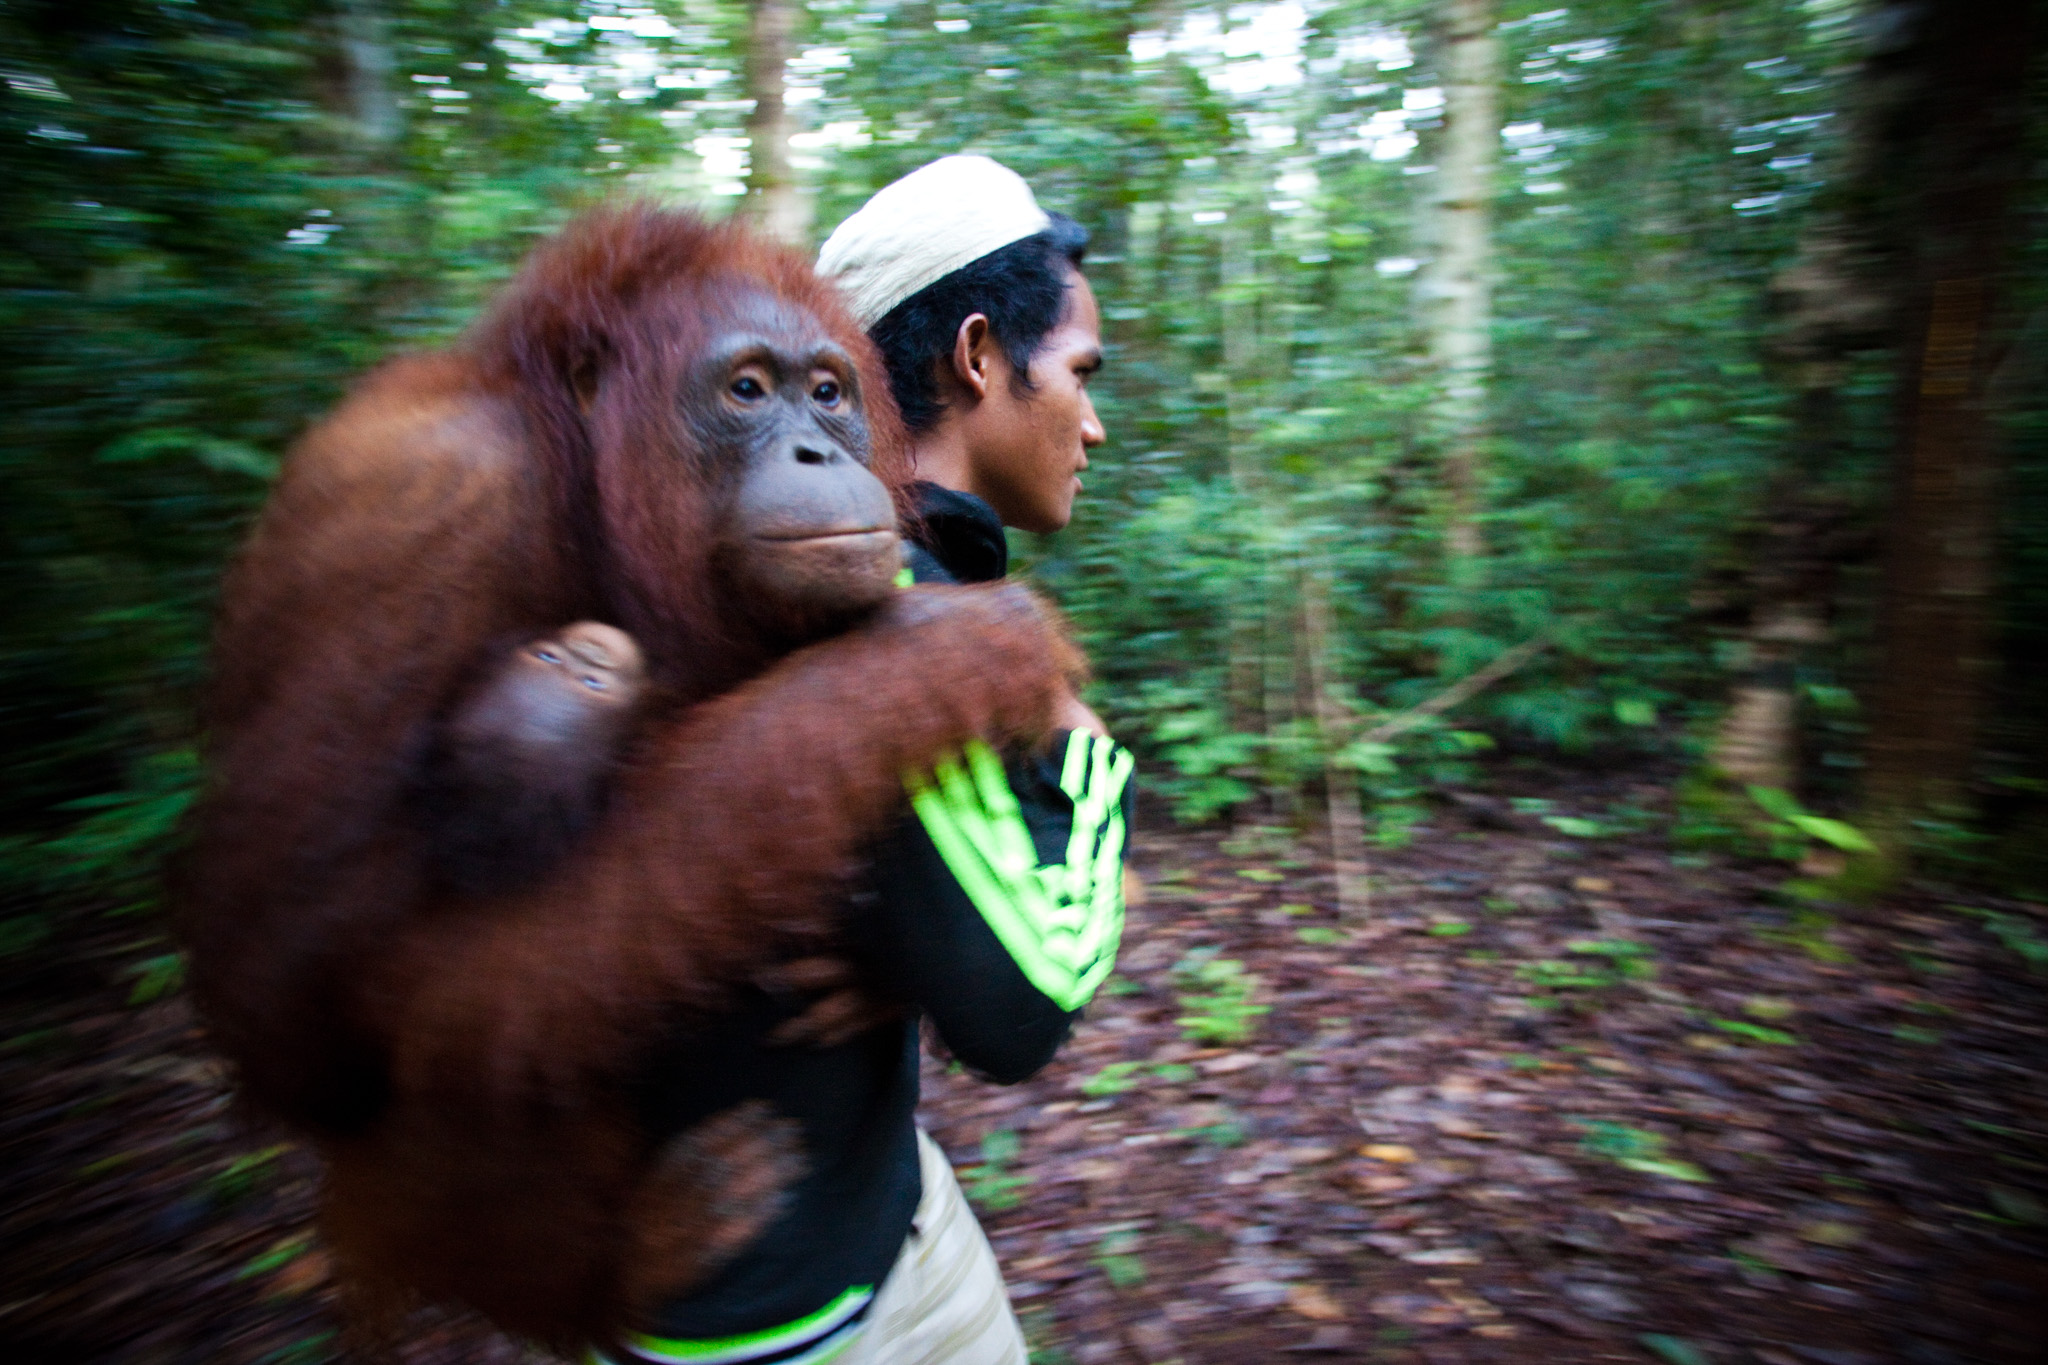 Irus is giving Edo and her baby a ride to the morning feeding—except that orangutans don't really ride, they just hang on a person like a sack of gravel, fifty pounds of the deadest dead weight. Irus comes from Babual Baboti, one of the Dayak villages on the periphery of the Lamandau reserve where Yayorin is working to build community support for conservation. He makes about ninety dollars each month as a field assistant at Camp Rasak, where his duties include feeding the released orangutans and periodically following them on their rambles through the forest, seeing where they go and noting their behavior.